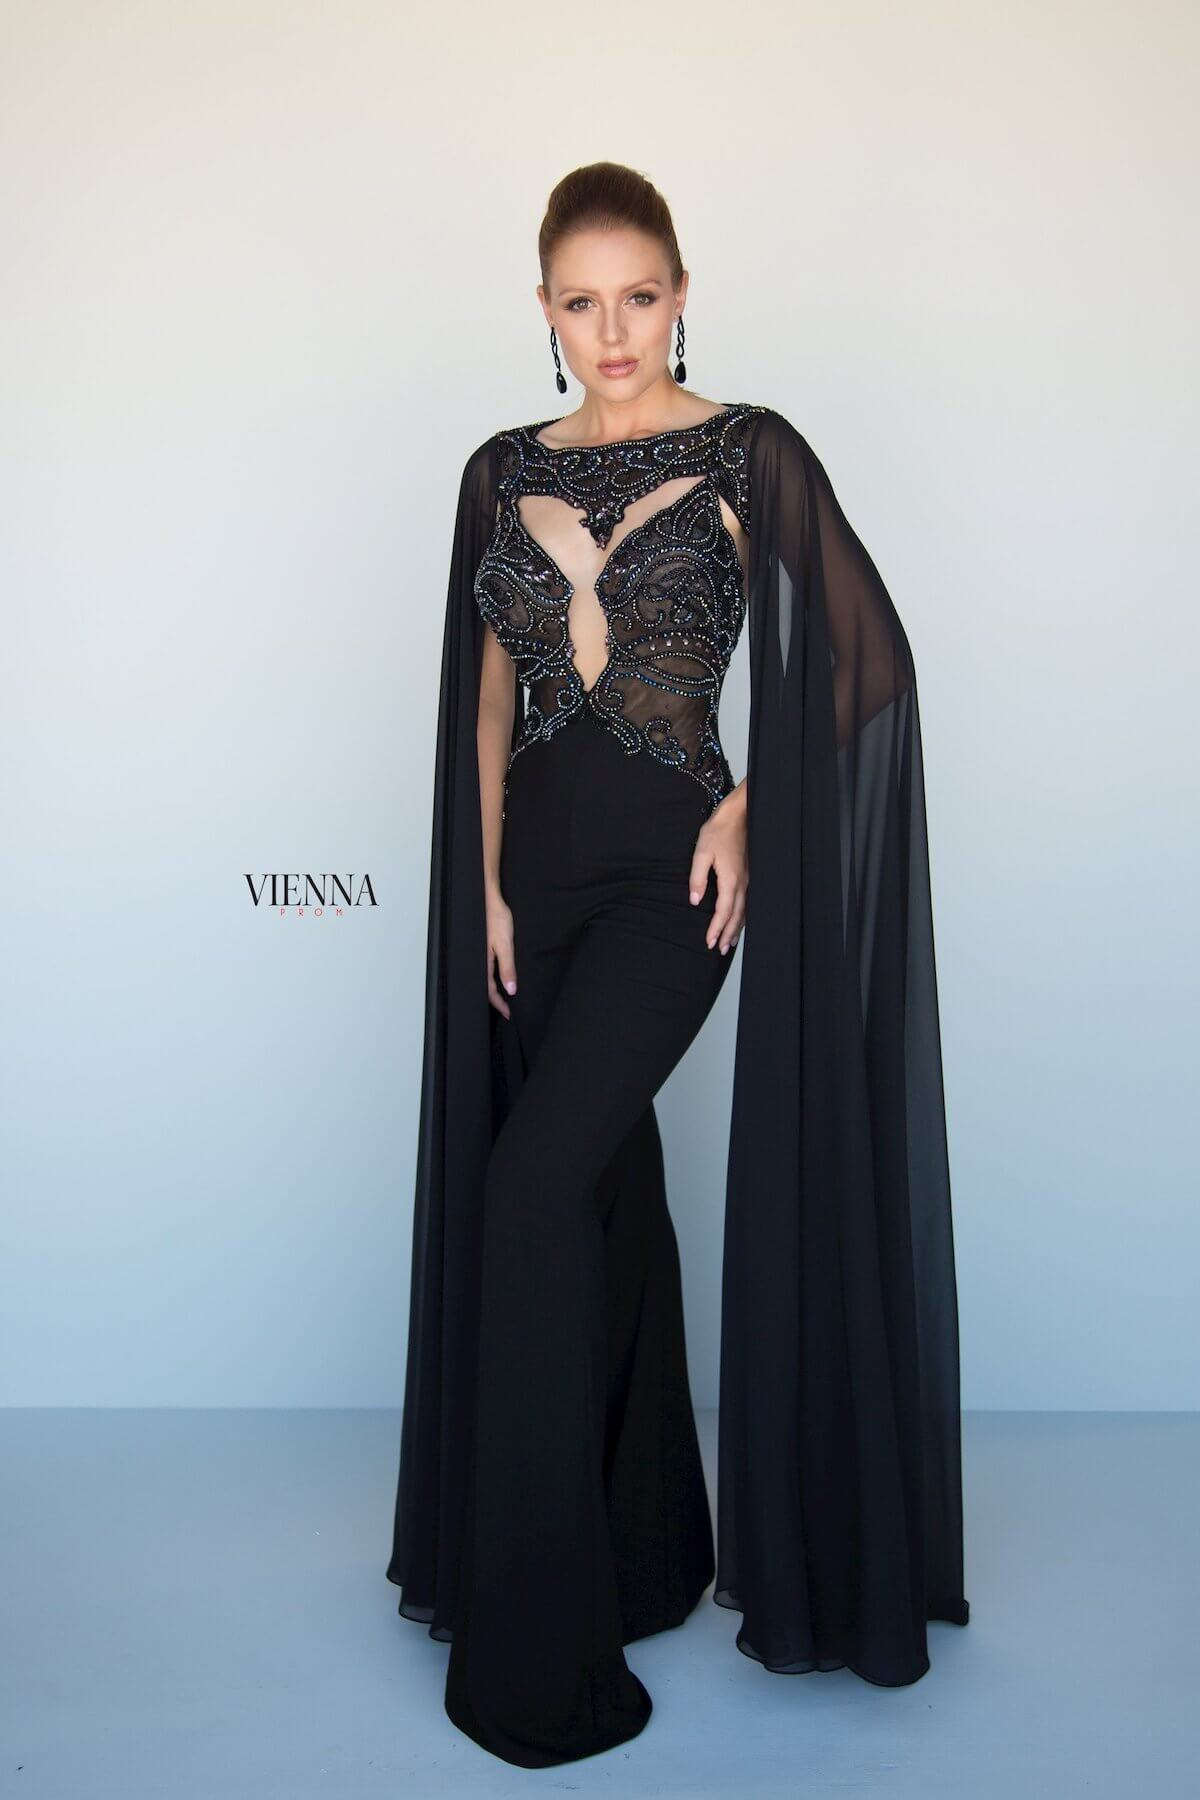 Style 9964 Vienna Black Size 00 Jumpsuit Fun Fashion Plunge Romper/Jumpsuit Dress on Queenly